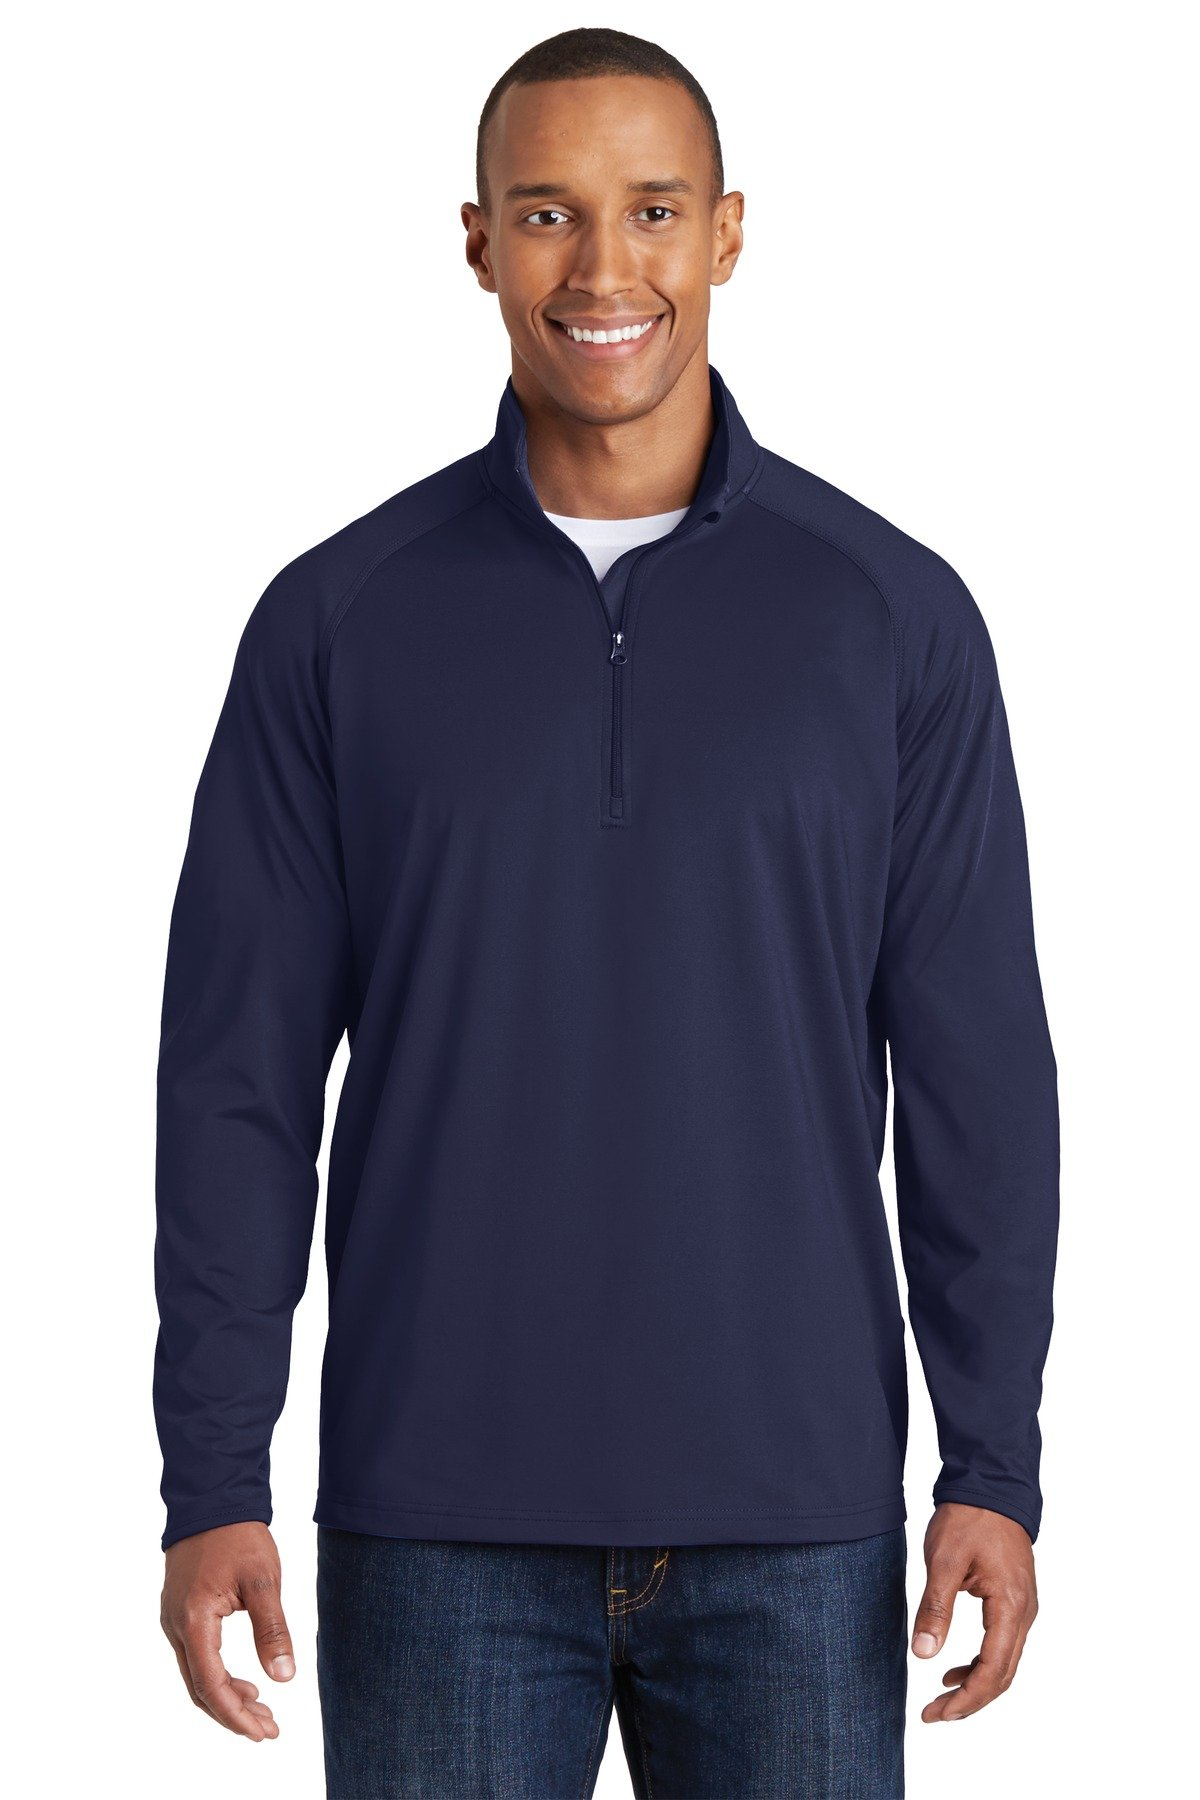 Sport-Tek 174 Sport-Wick 174 Stretch 1/2-Zip Pullover. ST850 Medium True Navy by Sport-Tek